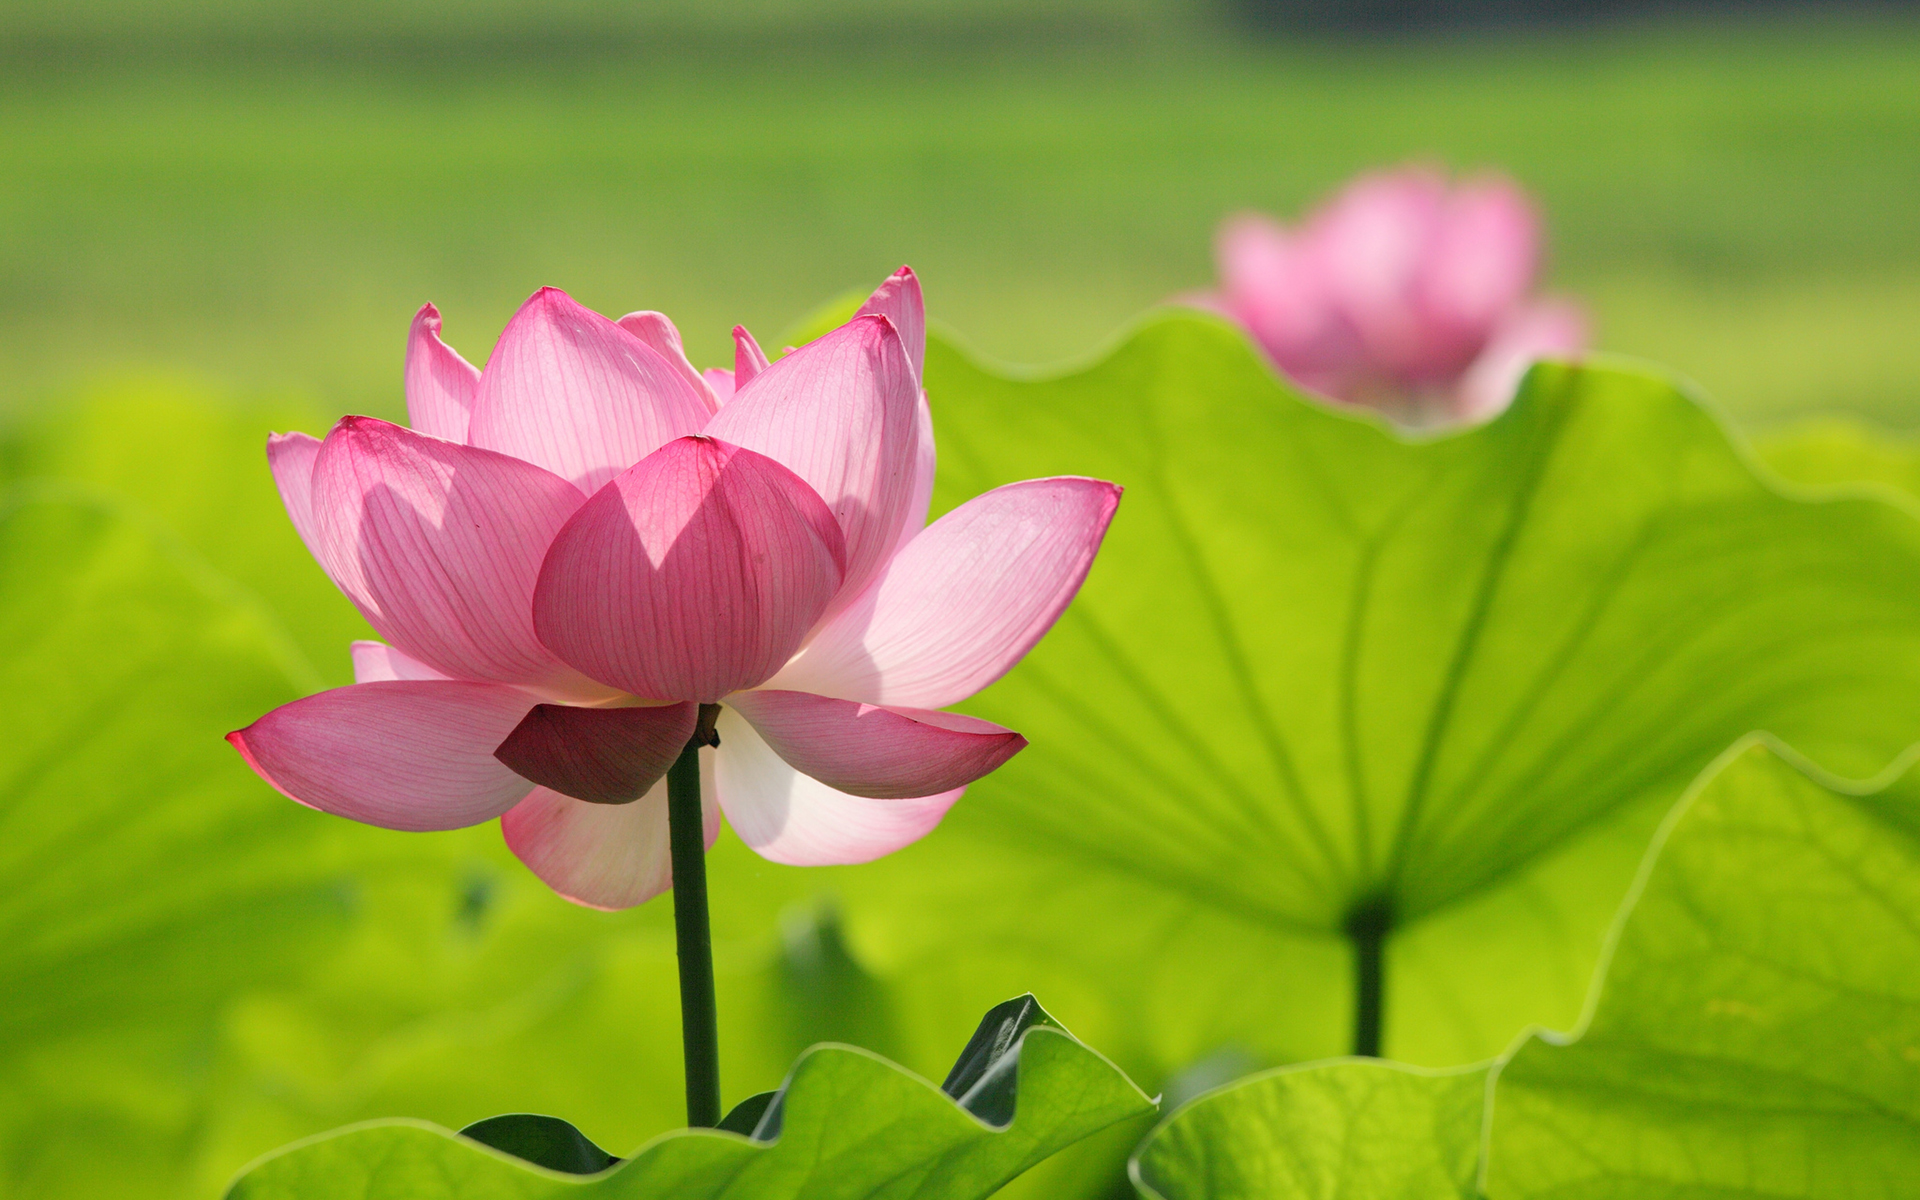 Lotus Flower Wallpapers, Pictures, Images